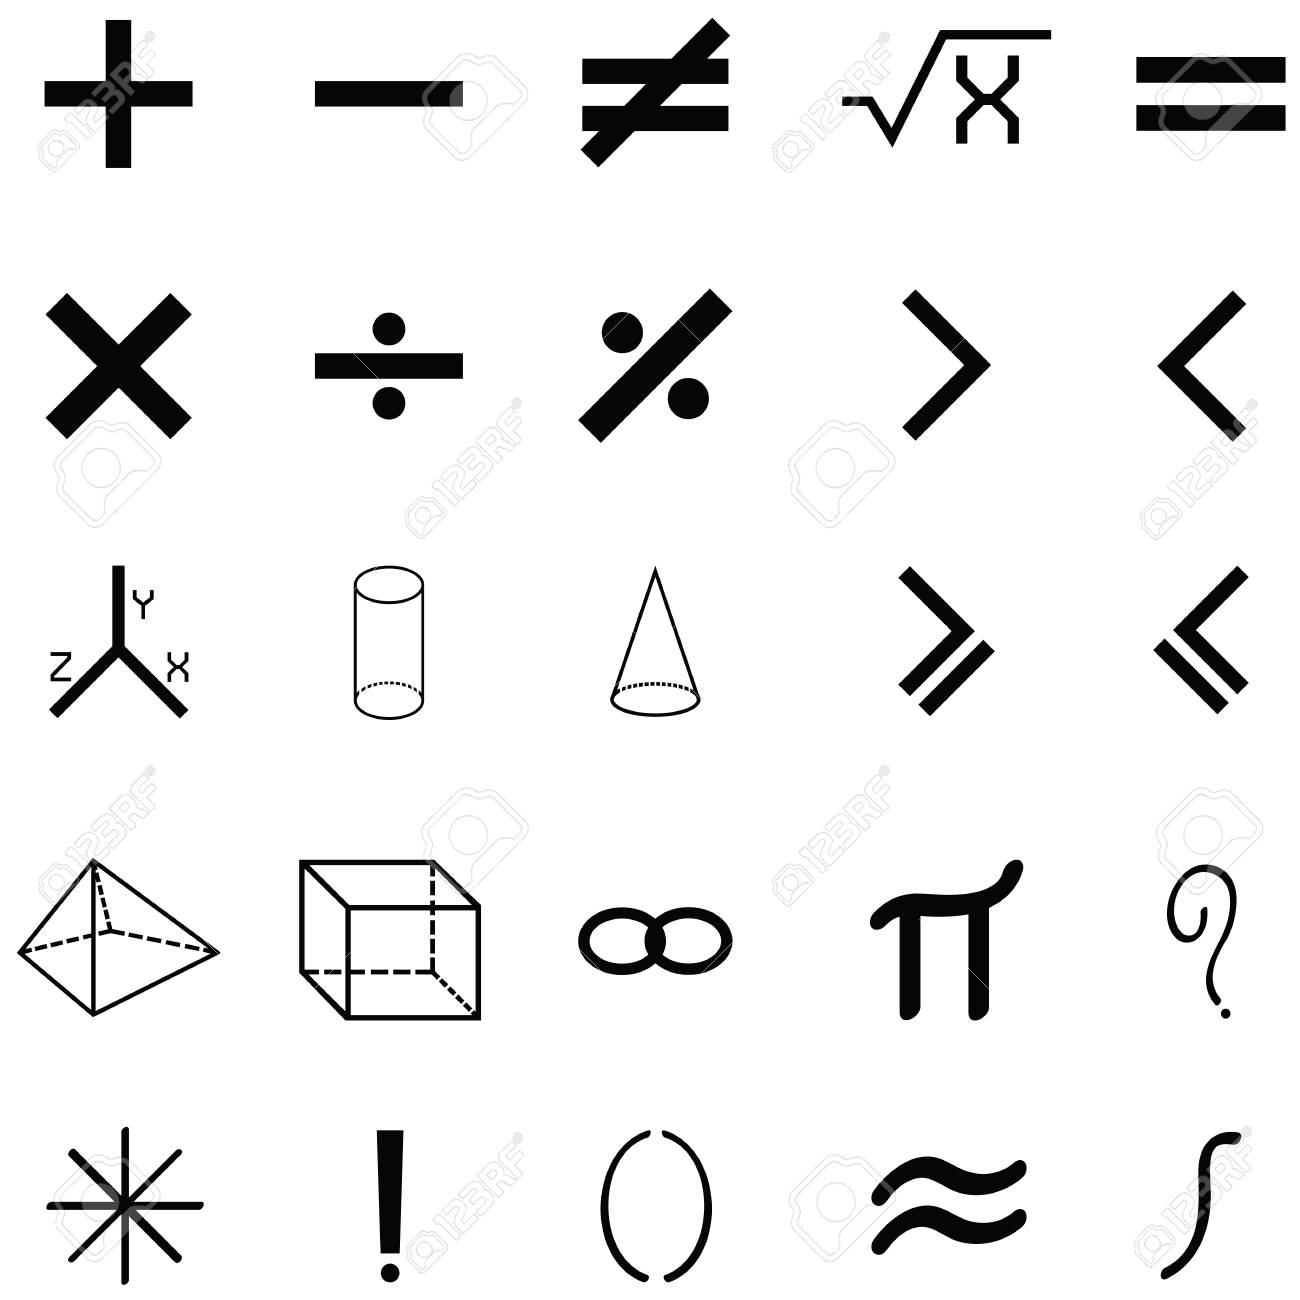 Simple Math Icon Set Royalty Free Cliparts, Vectors, And Stock ...